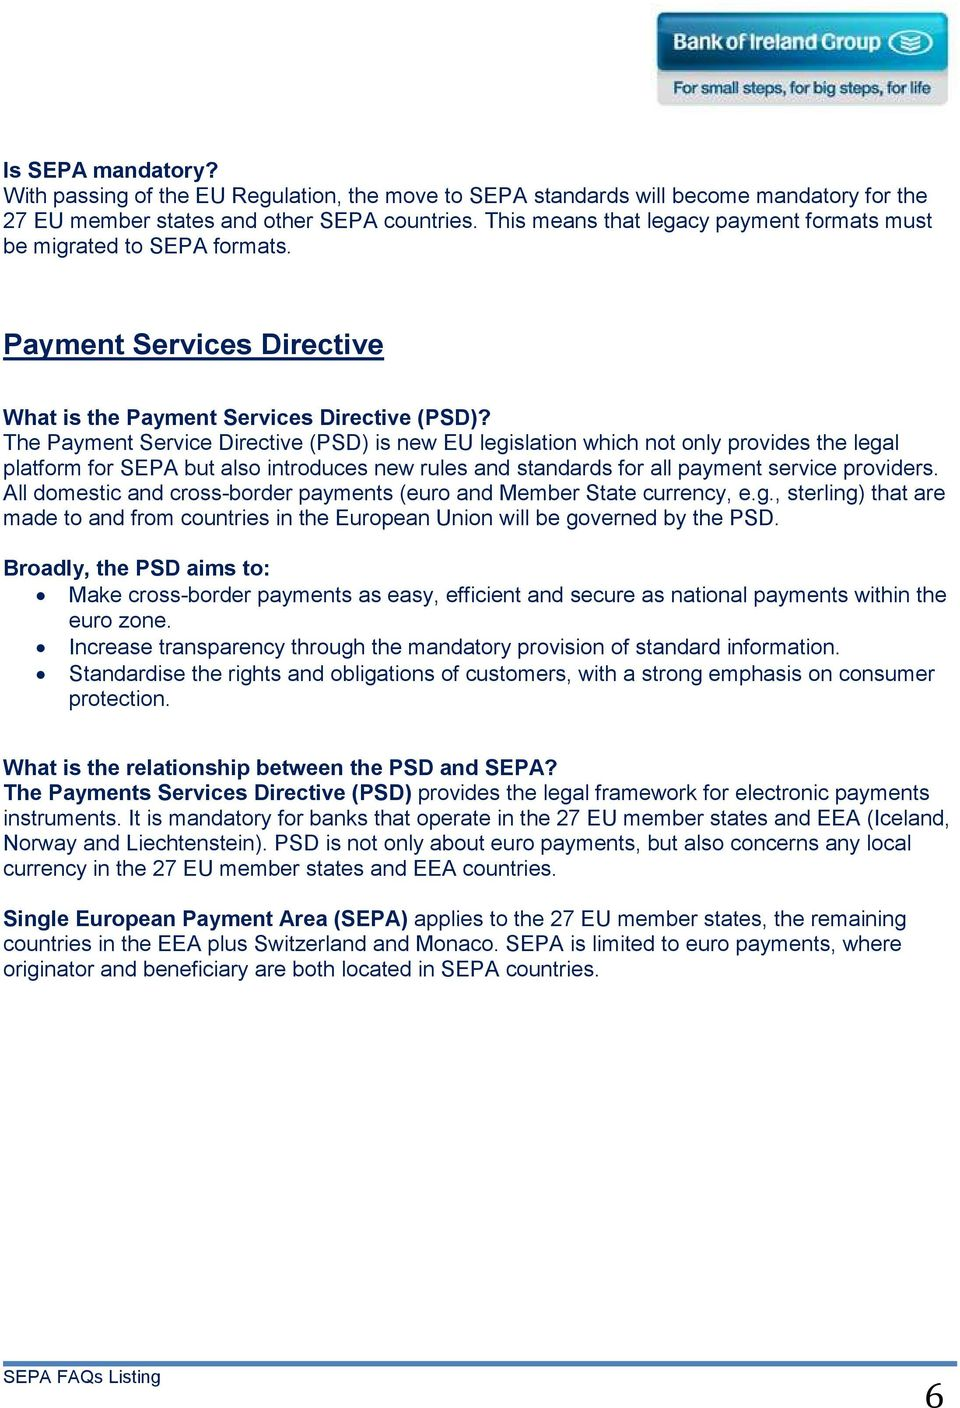 The Payment Service Directive (PSD) is new EU legislation which not only provides the legal platform for SEPA but also introduces new rules and standards for all payment service providers.